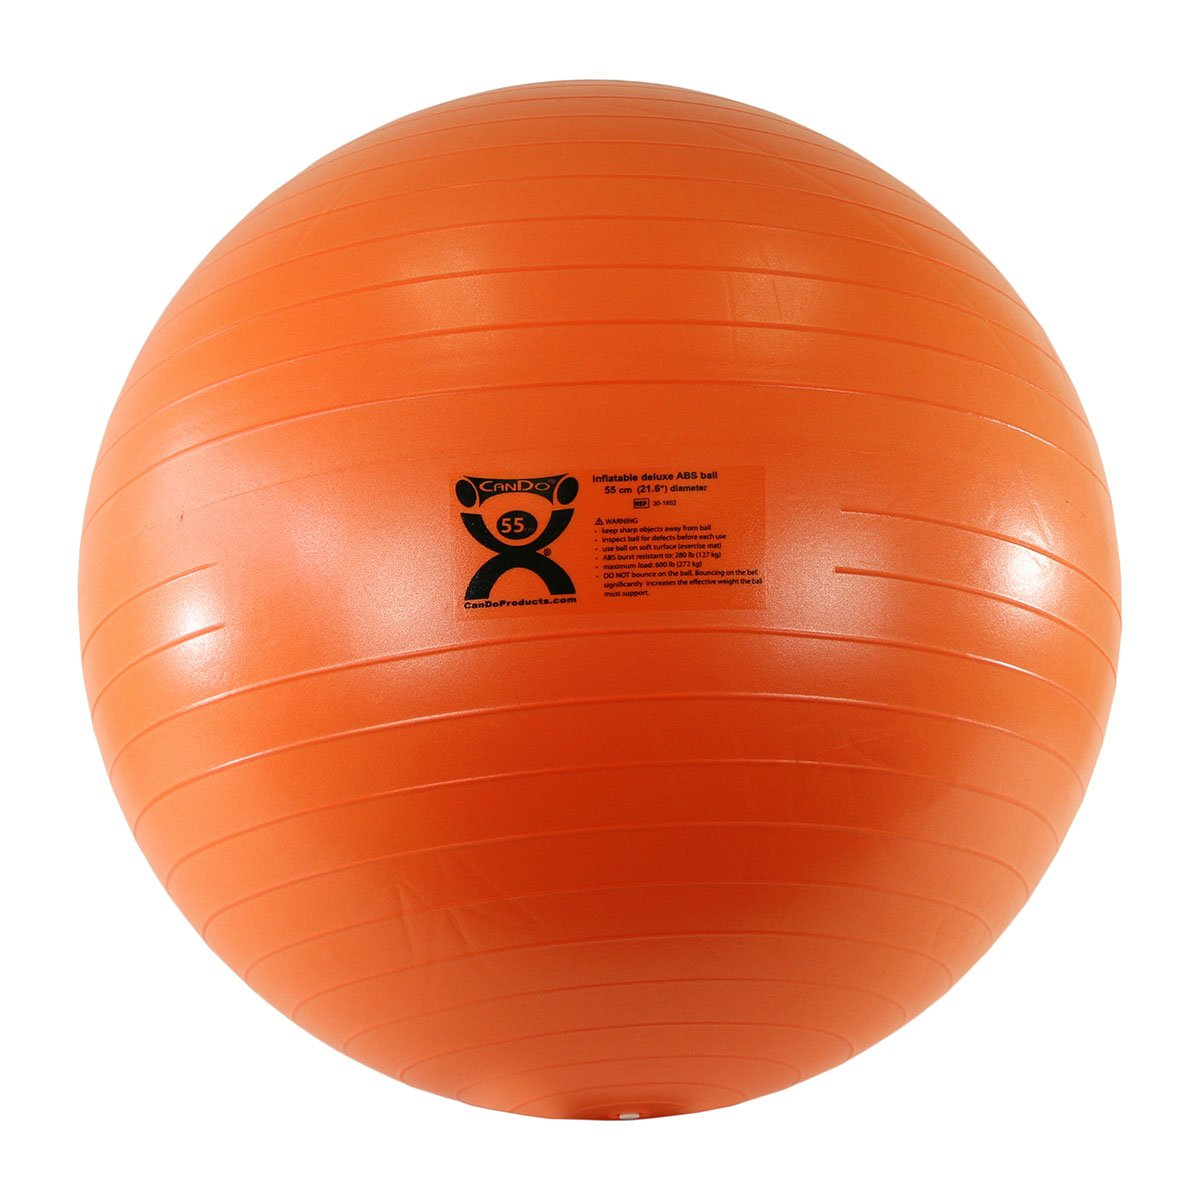 Cando - 30-1852 Deluxe ABS Inflatable Exercise Ball, Orange, 21.6""